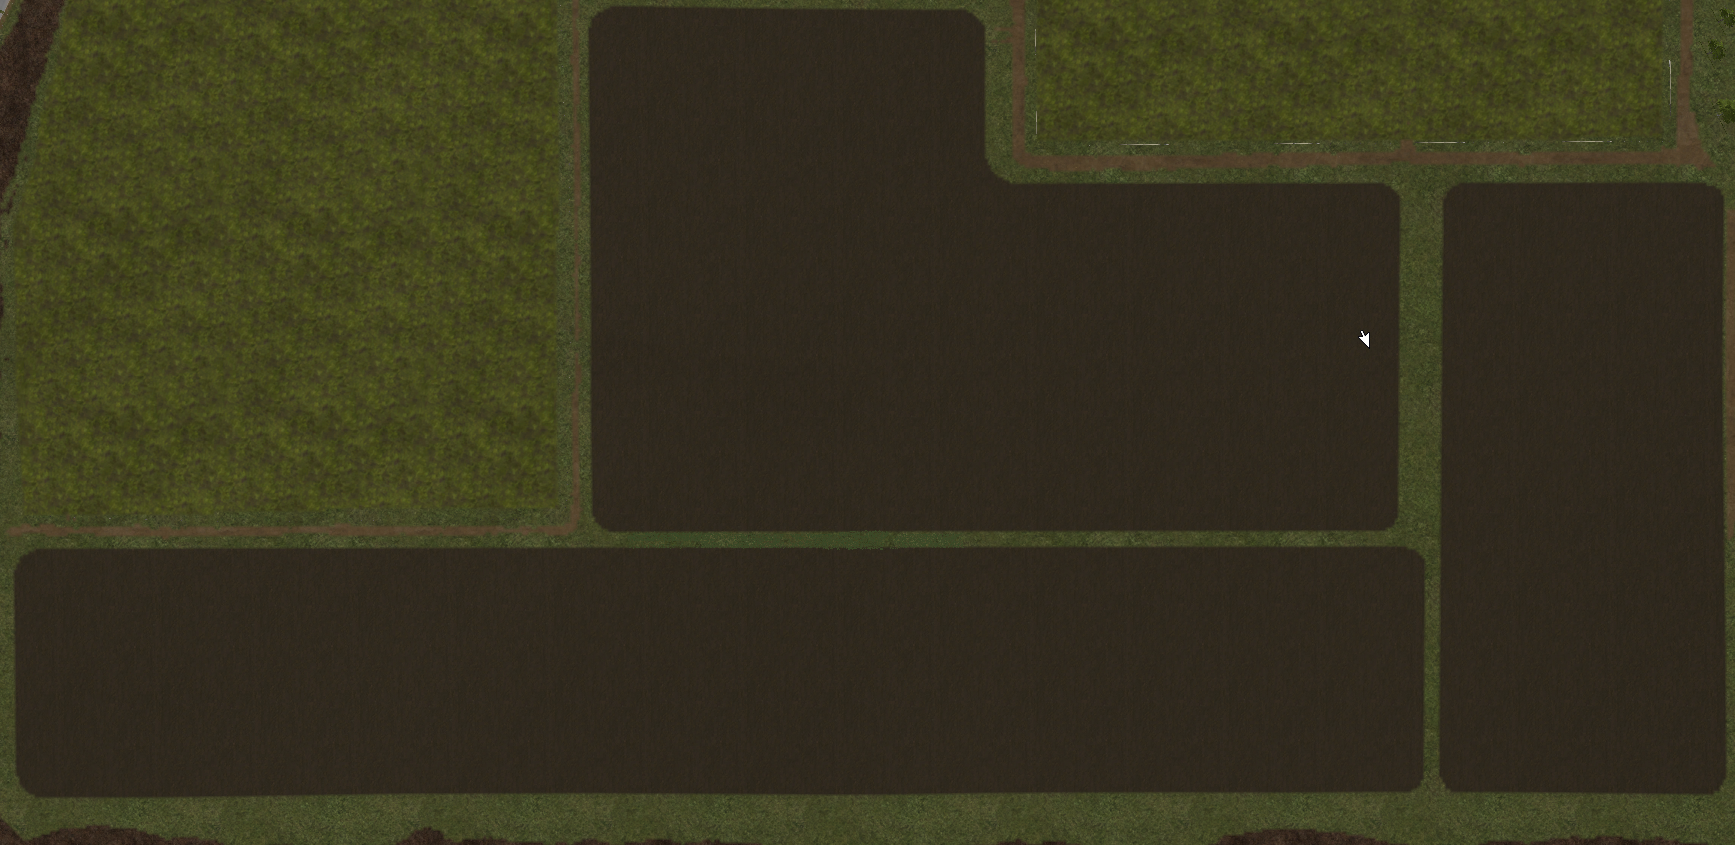 Rezone! (Simcity flash back). Field 10 and 11 are down on size a bit, but field 12 grew by a like amount so end of the day its all good.